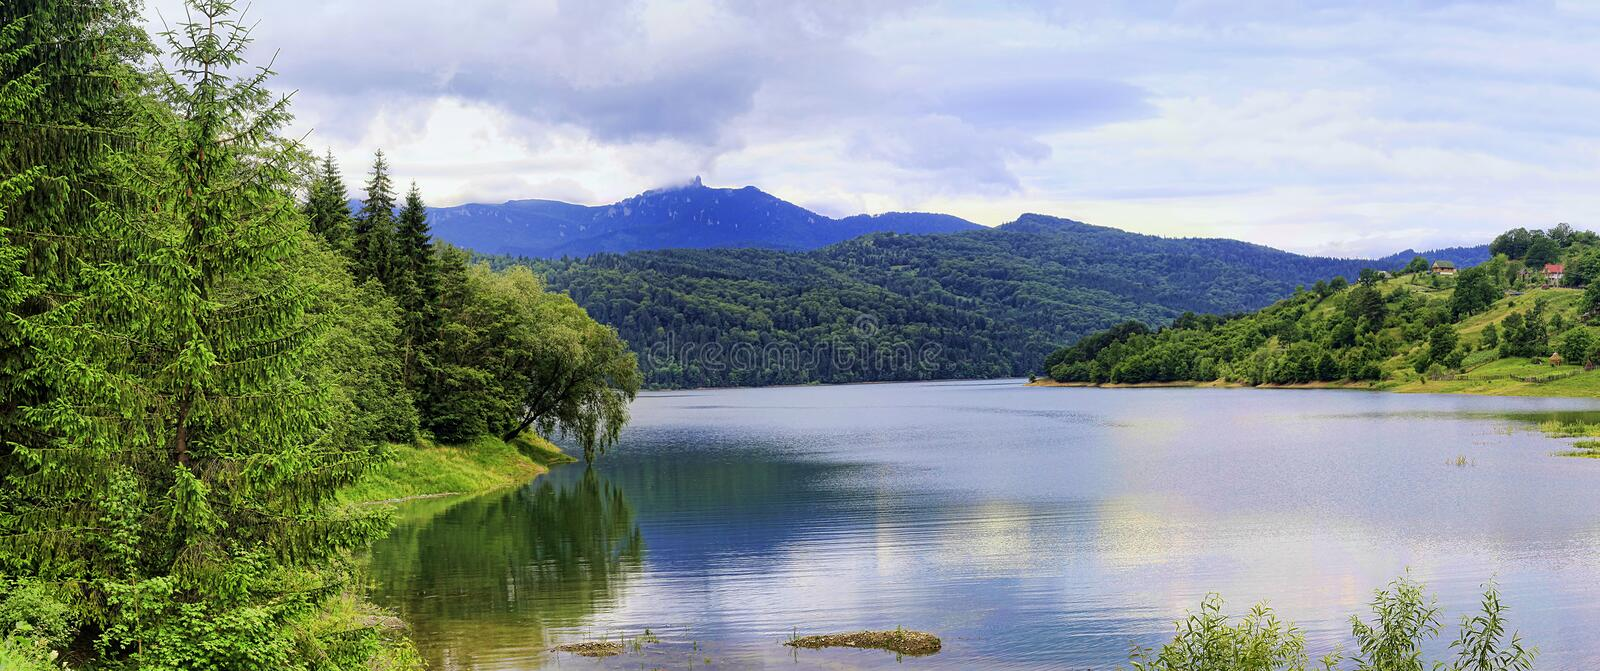 Landscape with Bicaz lake and Ceahlau mountain stock photography